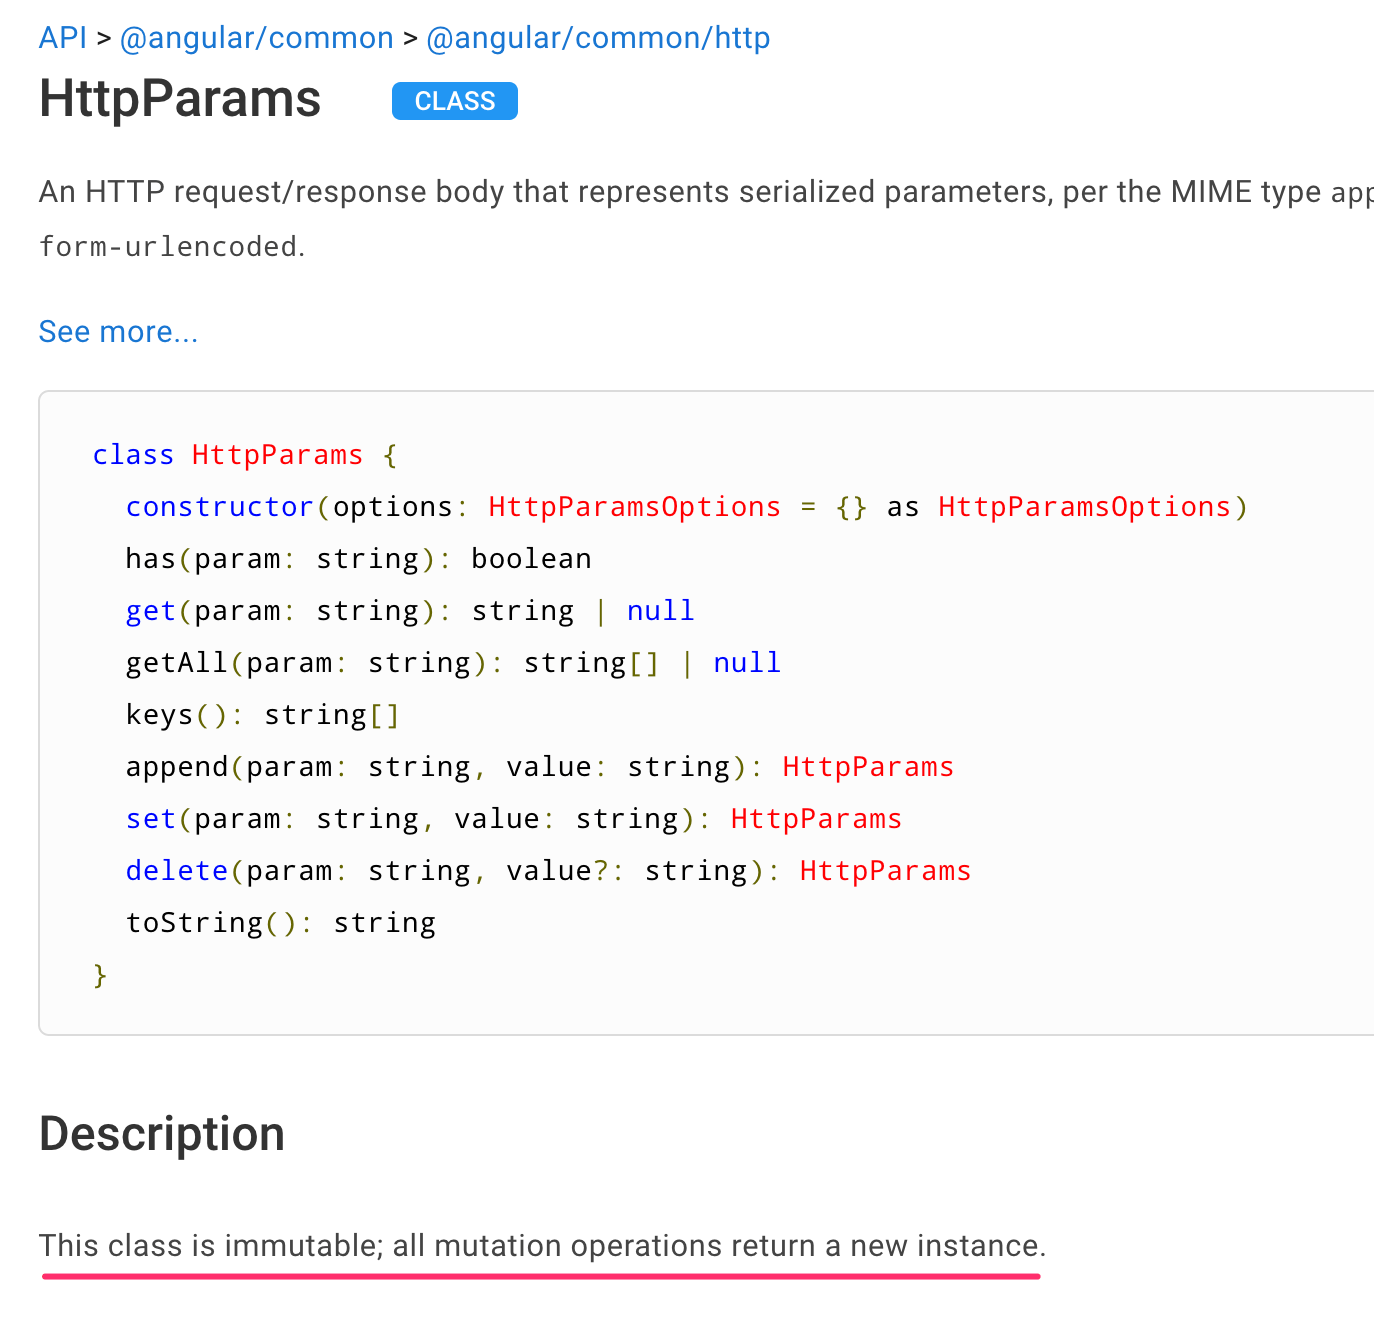 API documentation page for HttpParams